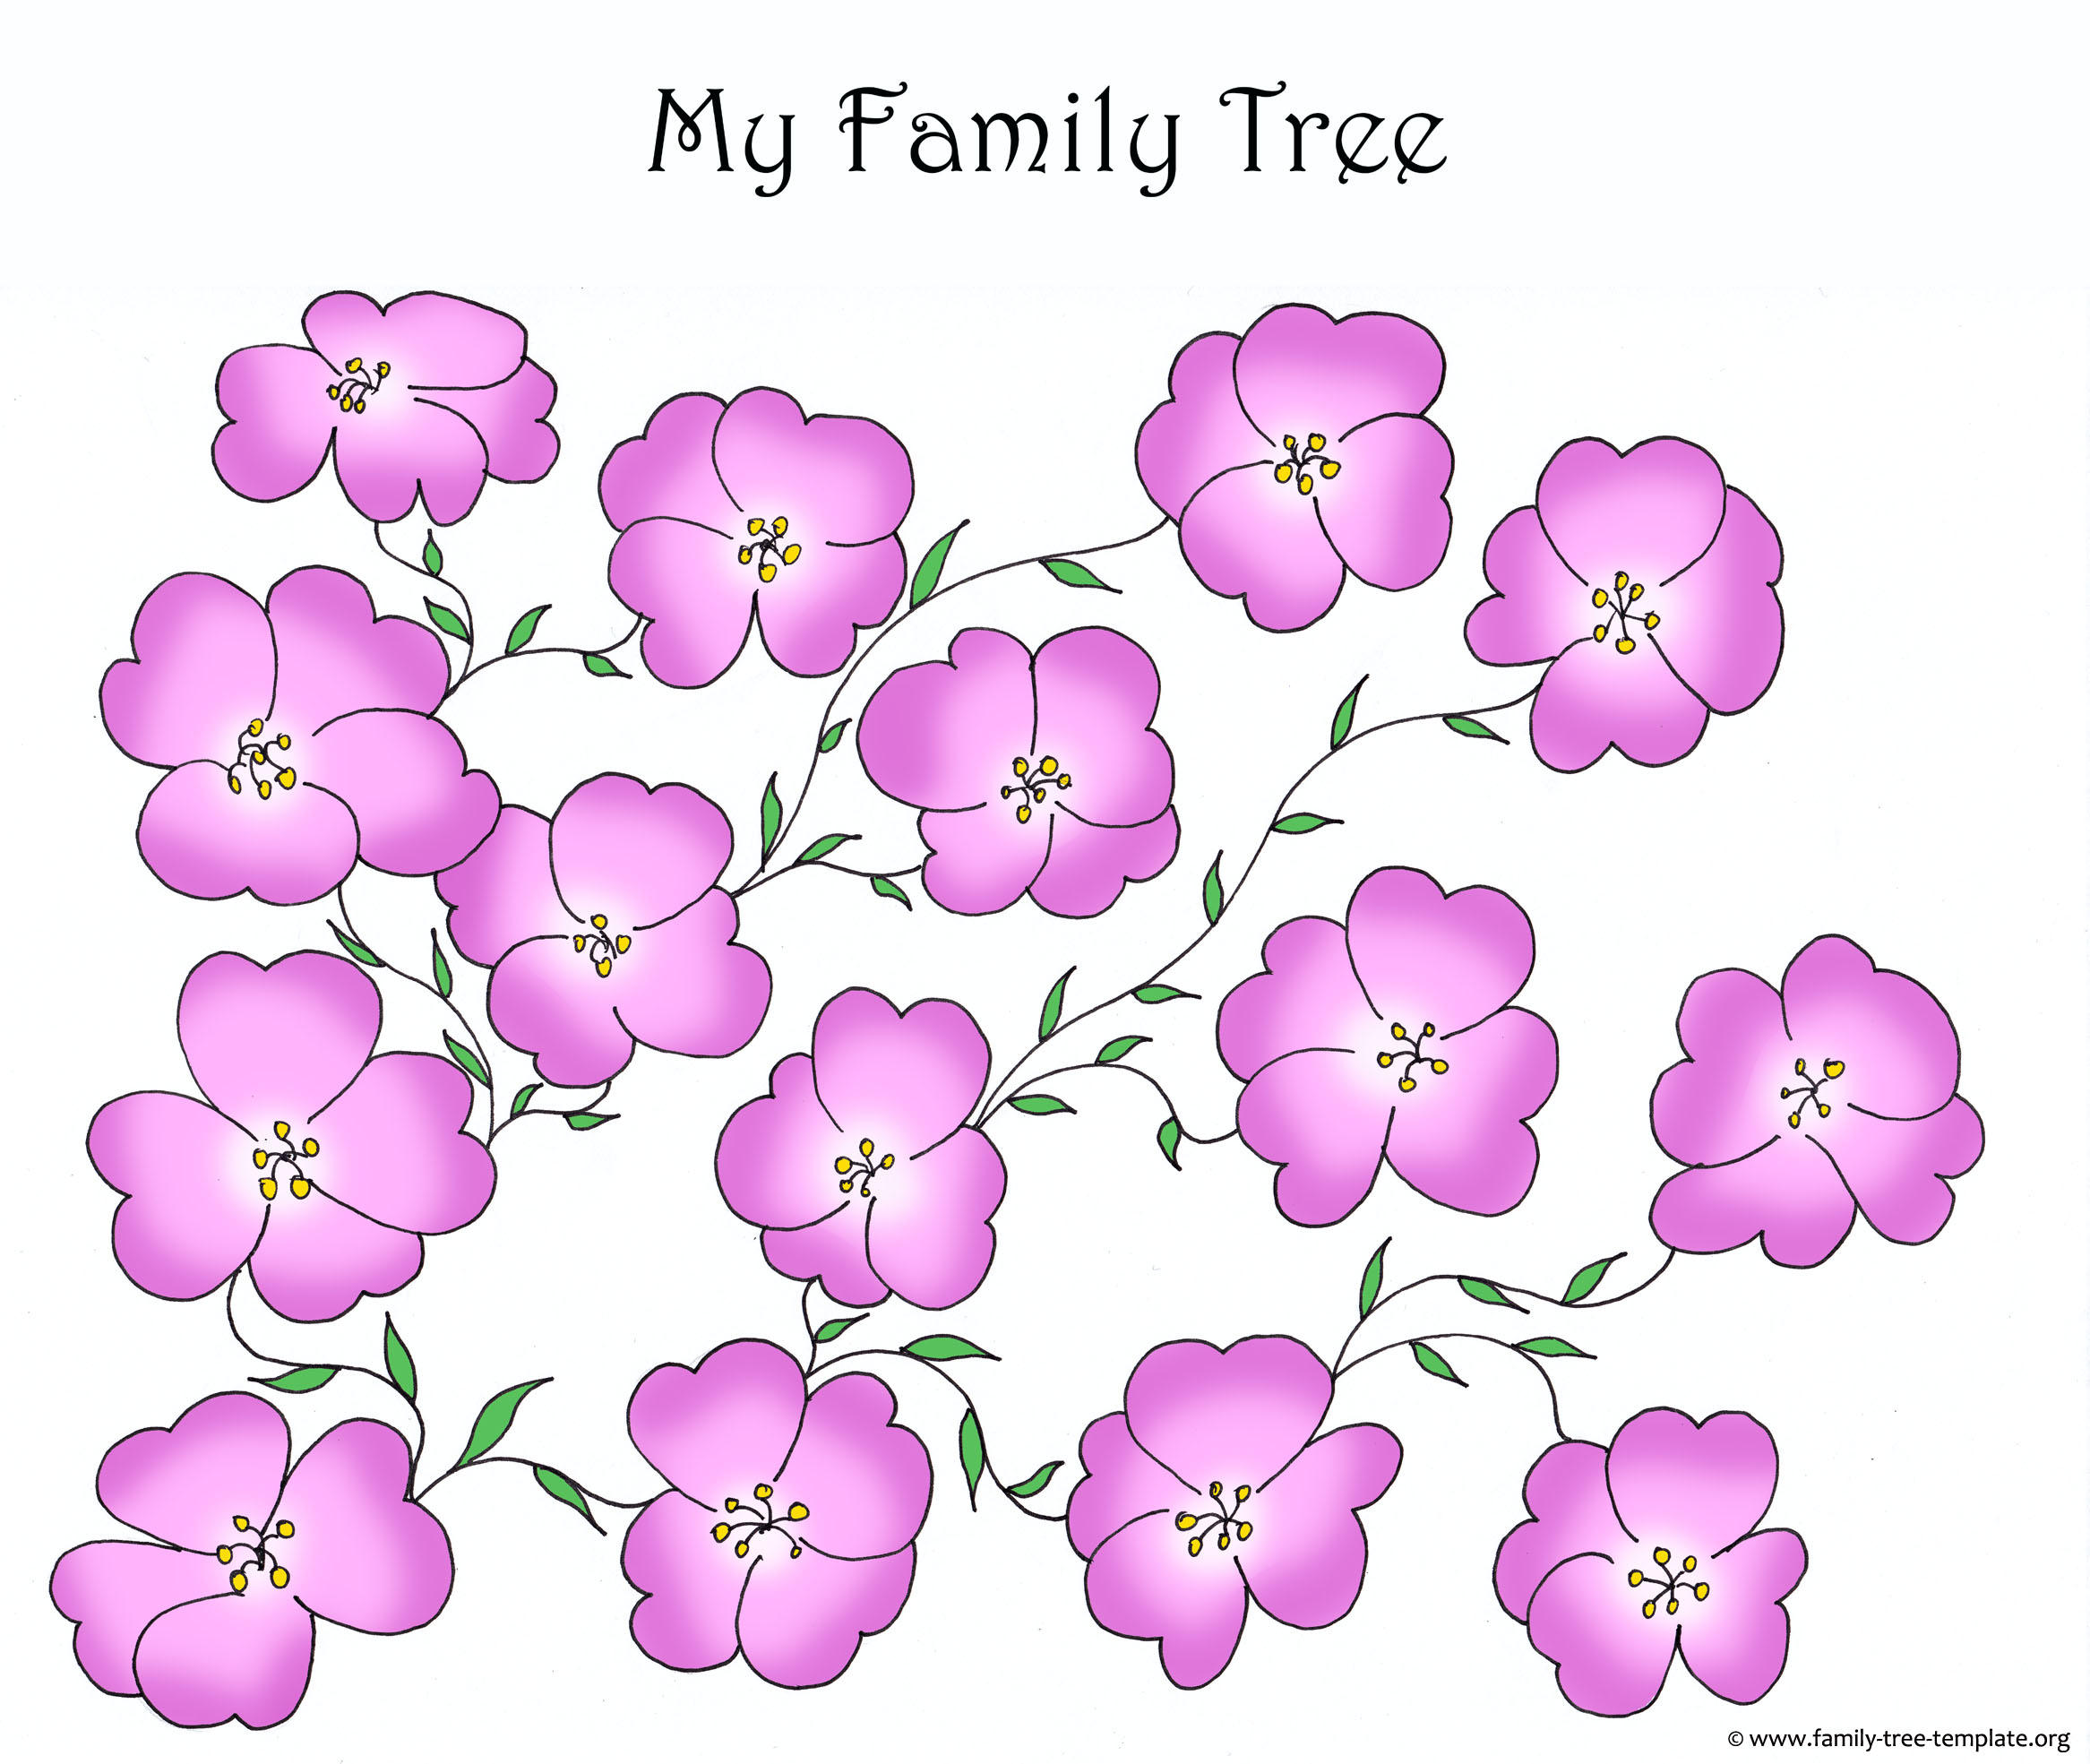 Family tree form with pink flowers.